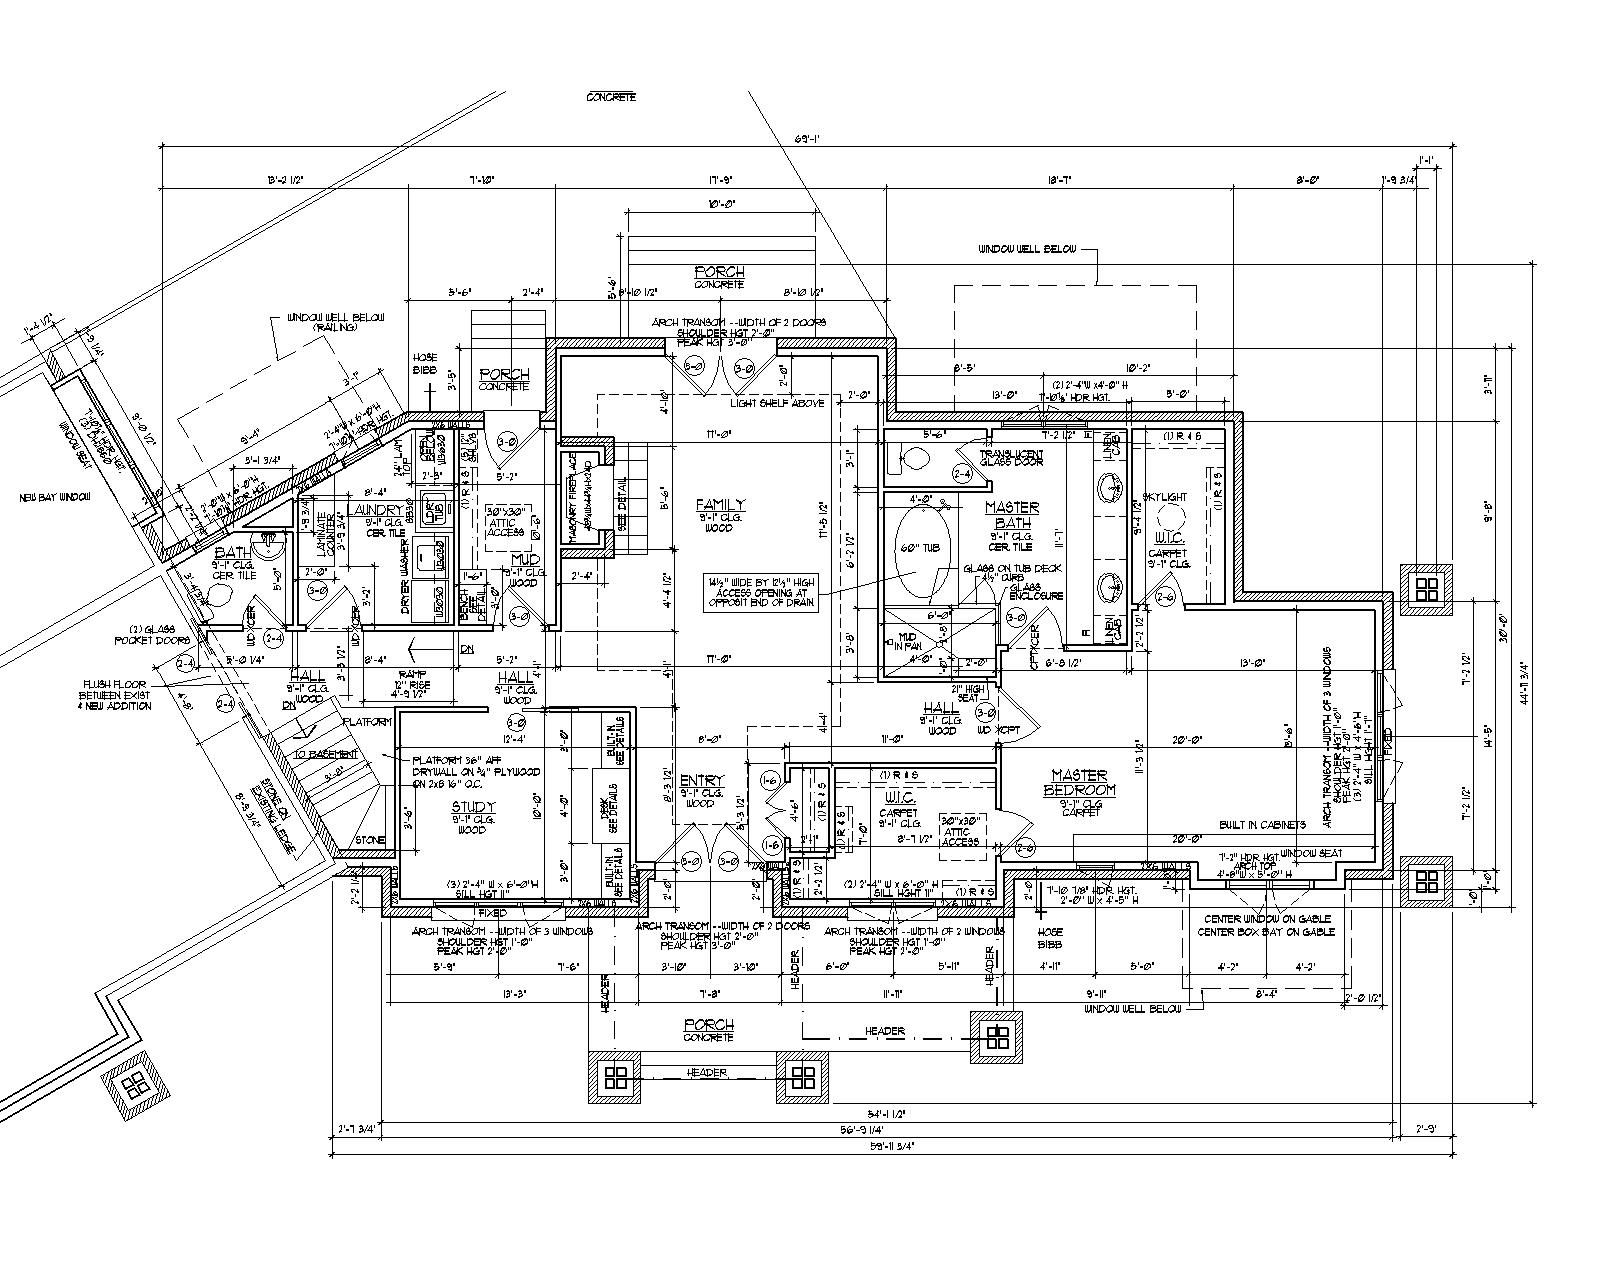 2d autocad house plans residential building drawings cad for How to draw house blueprints